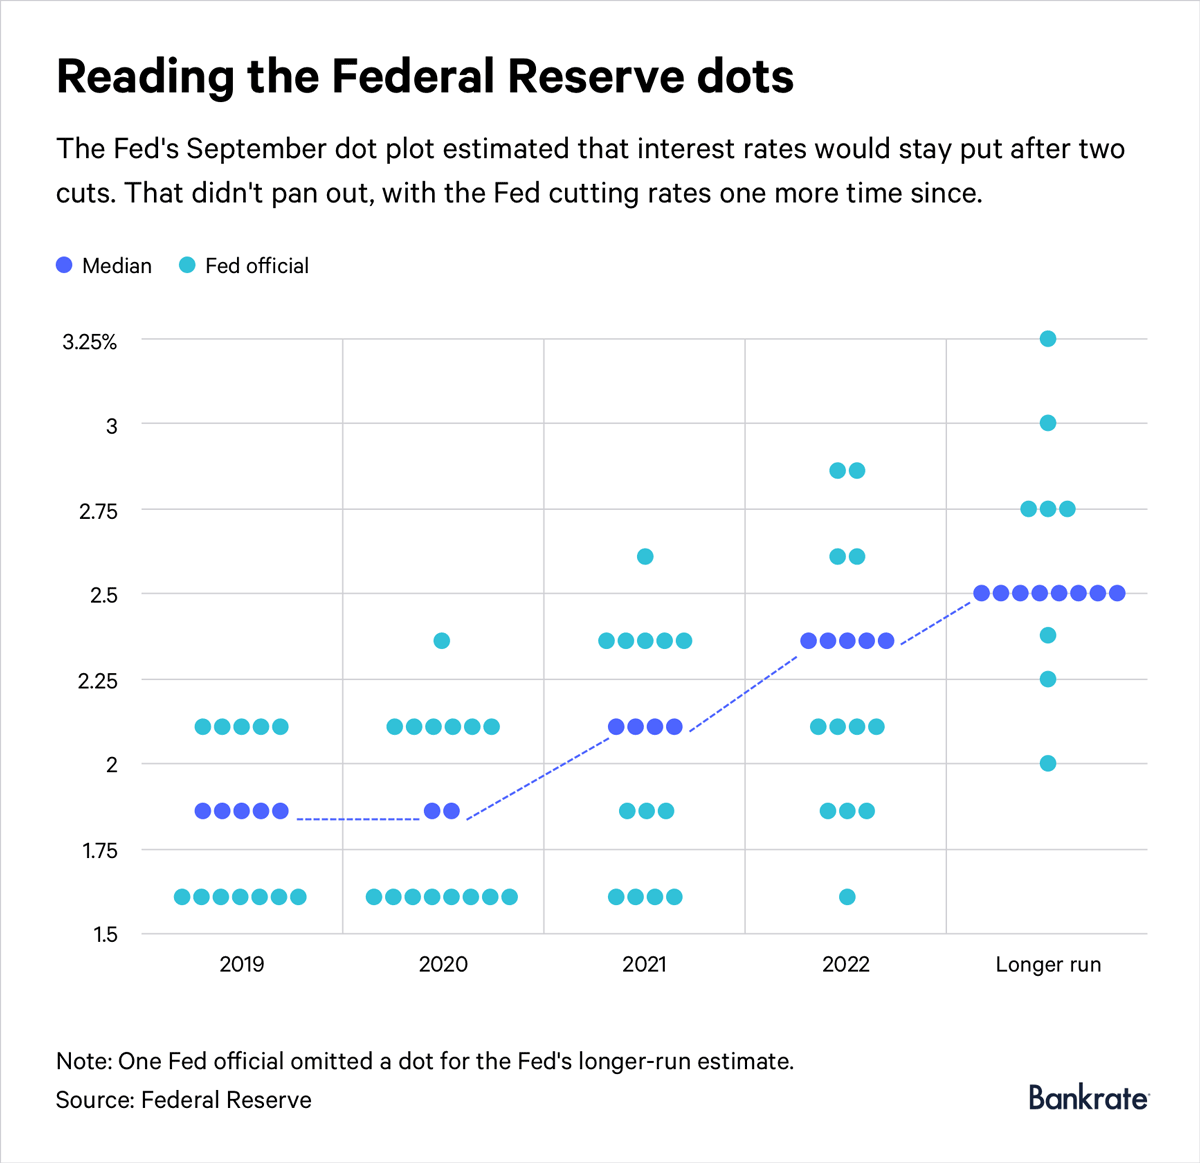 Federal Reserve's dot plot